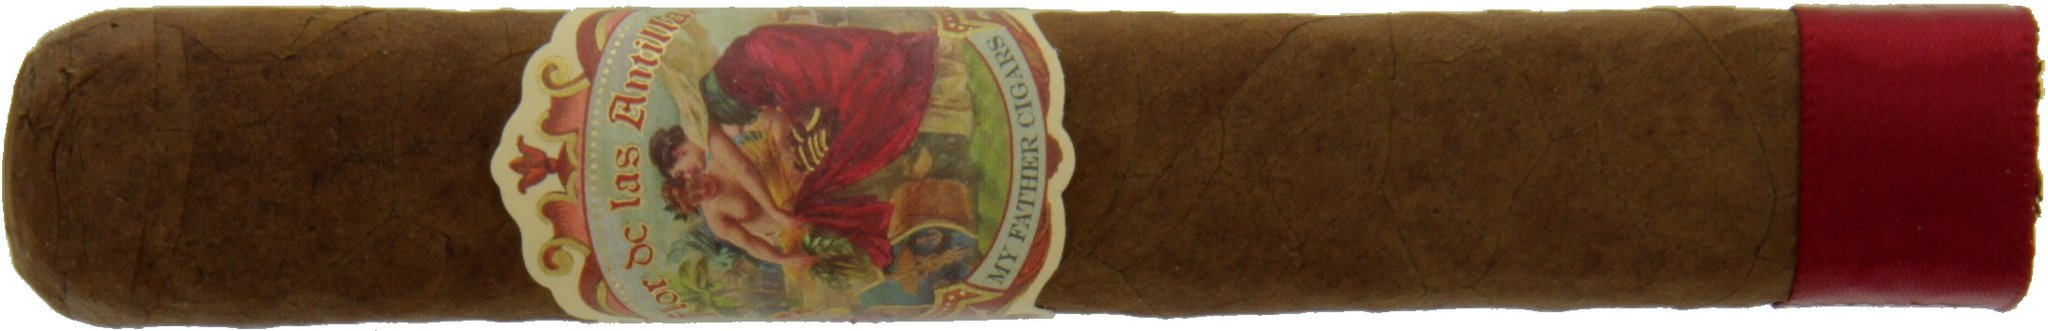 Don Pepin Flor de las Antillas Robusto